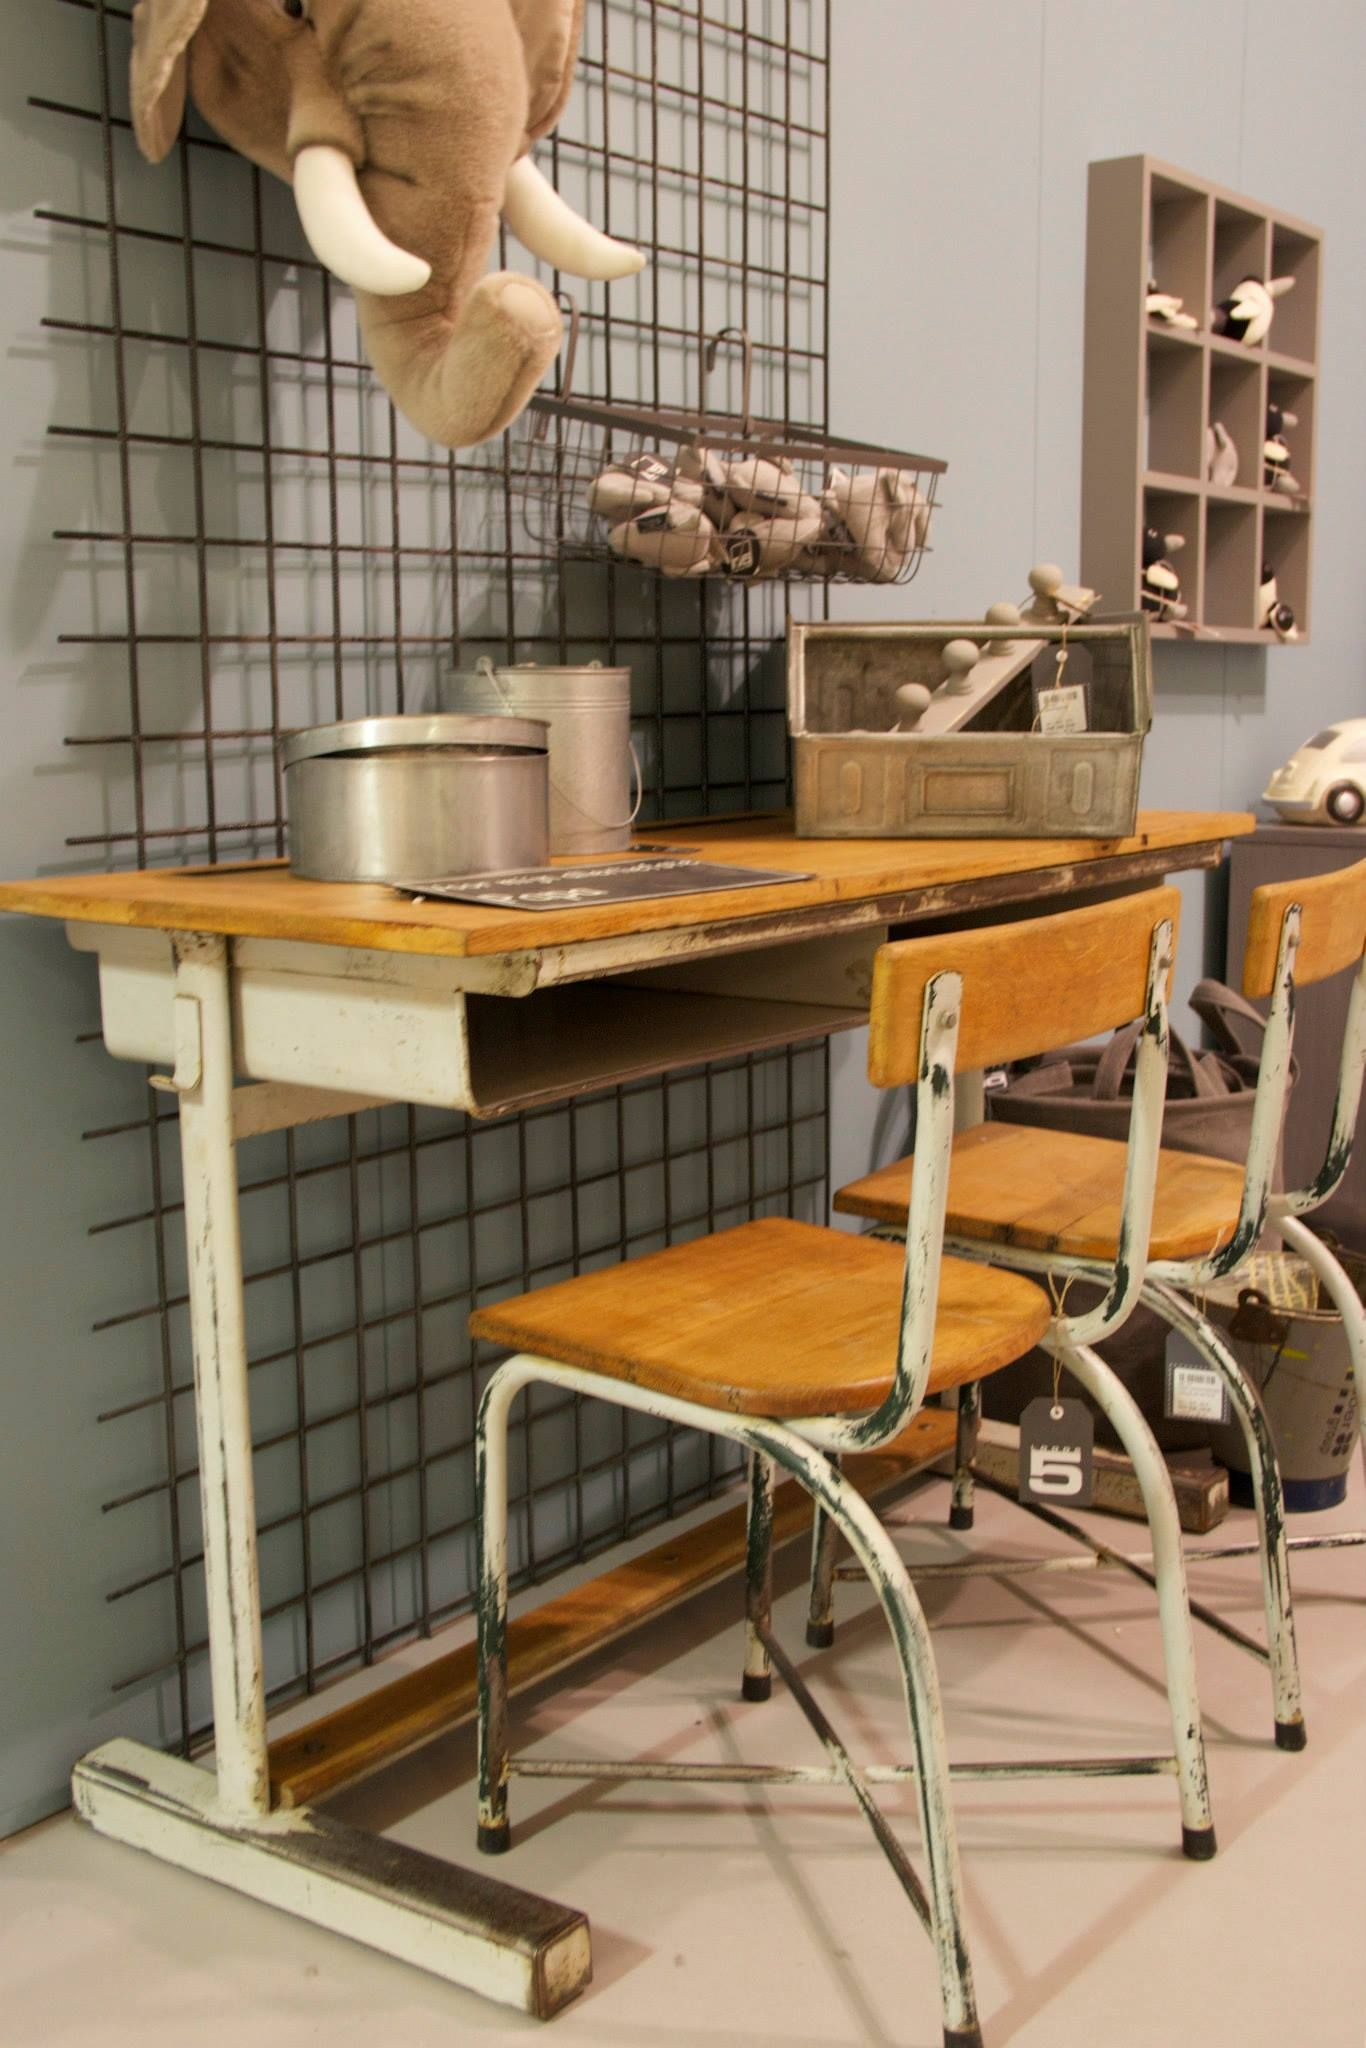 Loods 5 Kinderkamer Vintage Bij Loods5 Dziecko Cool Kids Rooms Boys Industrial